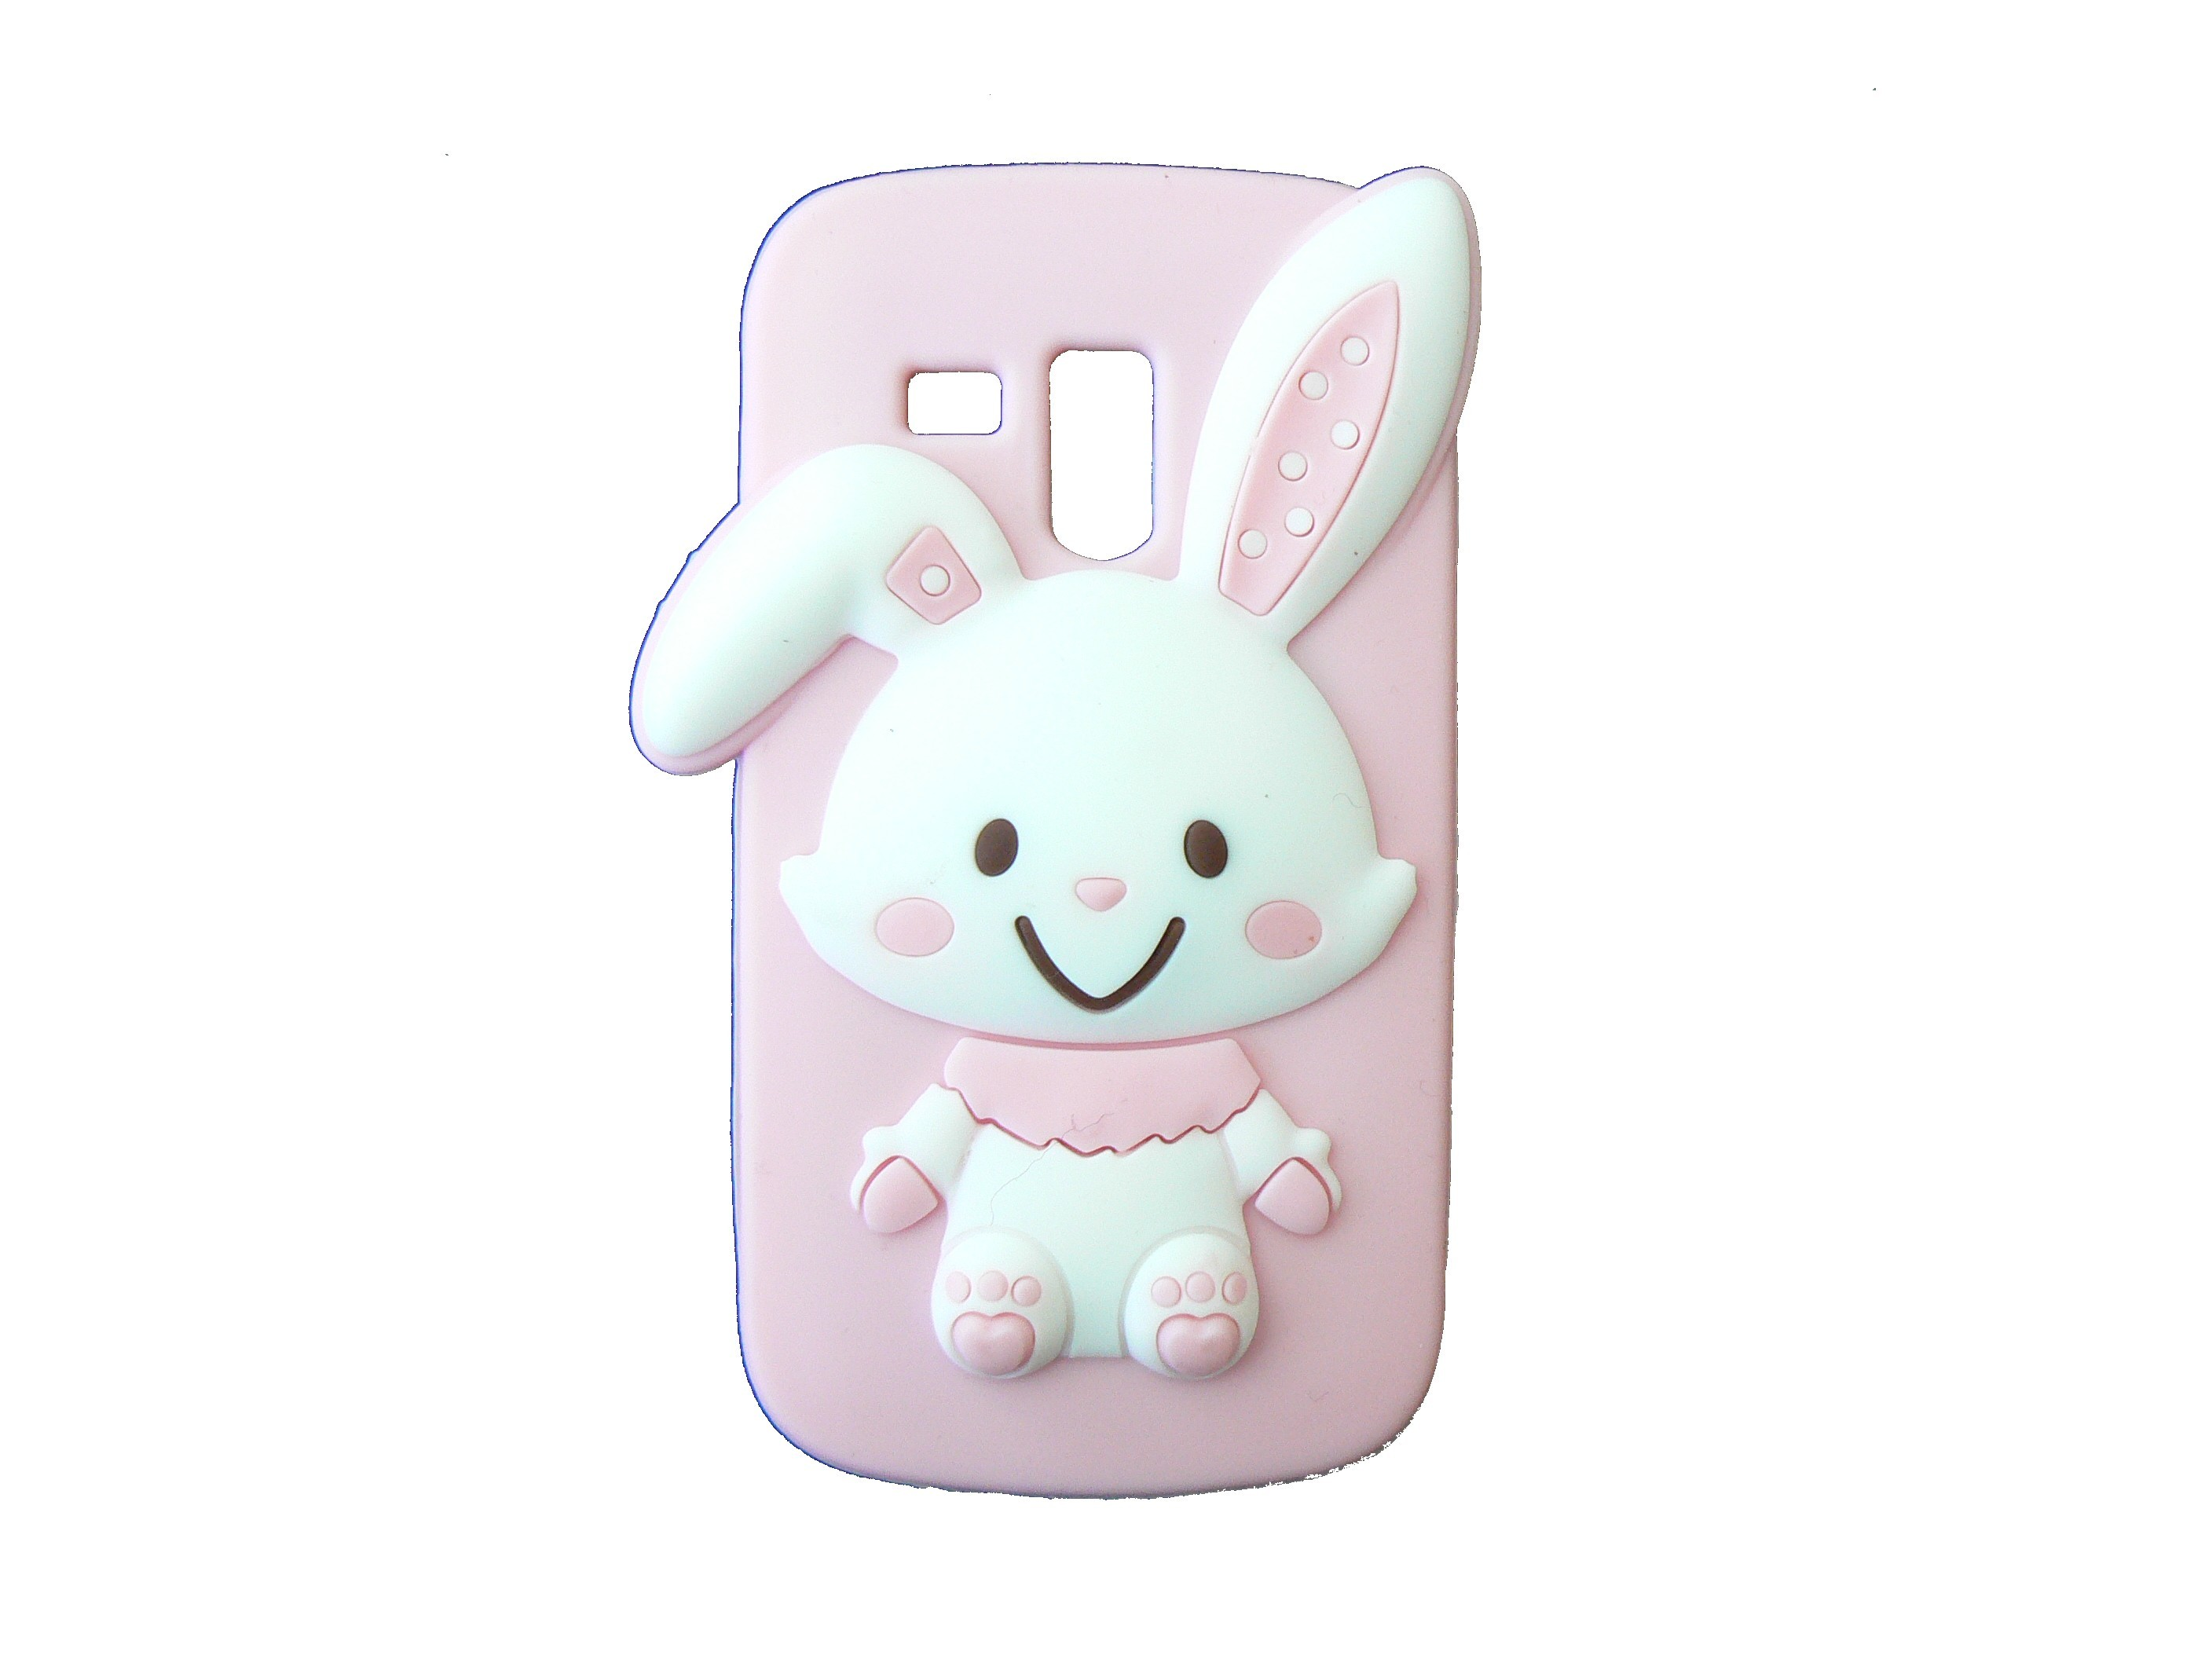 Coque silicone rose pour Samsung Galaxy Trend/S7560 lapin blanc